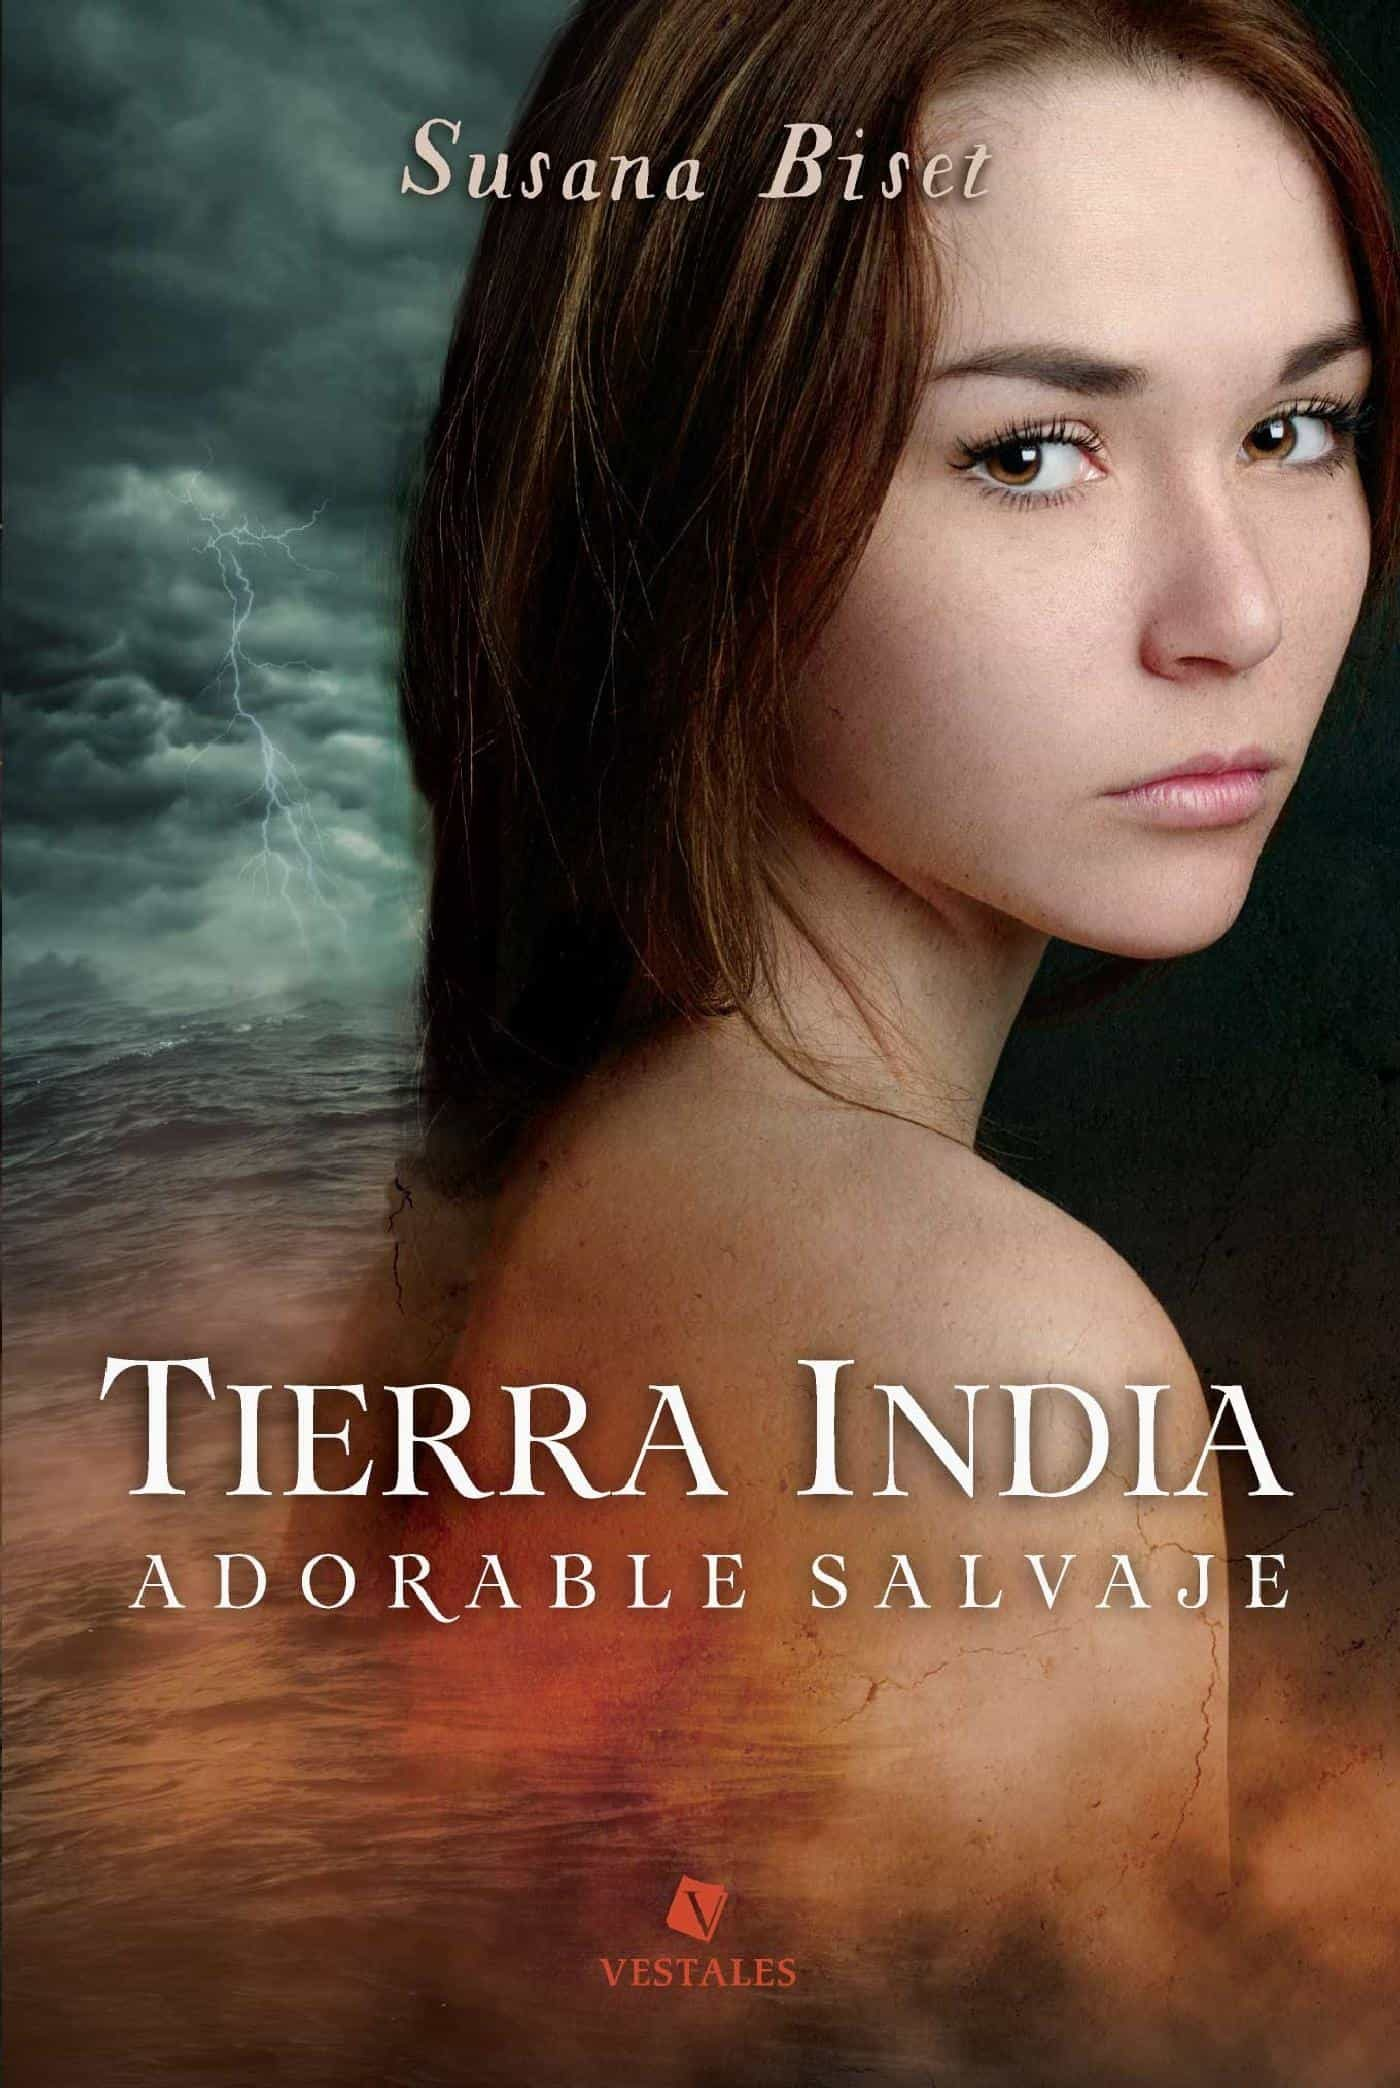 Tierra india I. Adorable salvaje - Susana Biset (Rom)  9789873863493